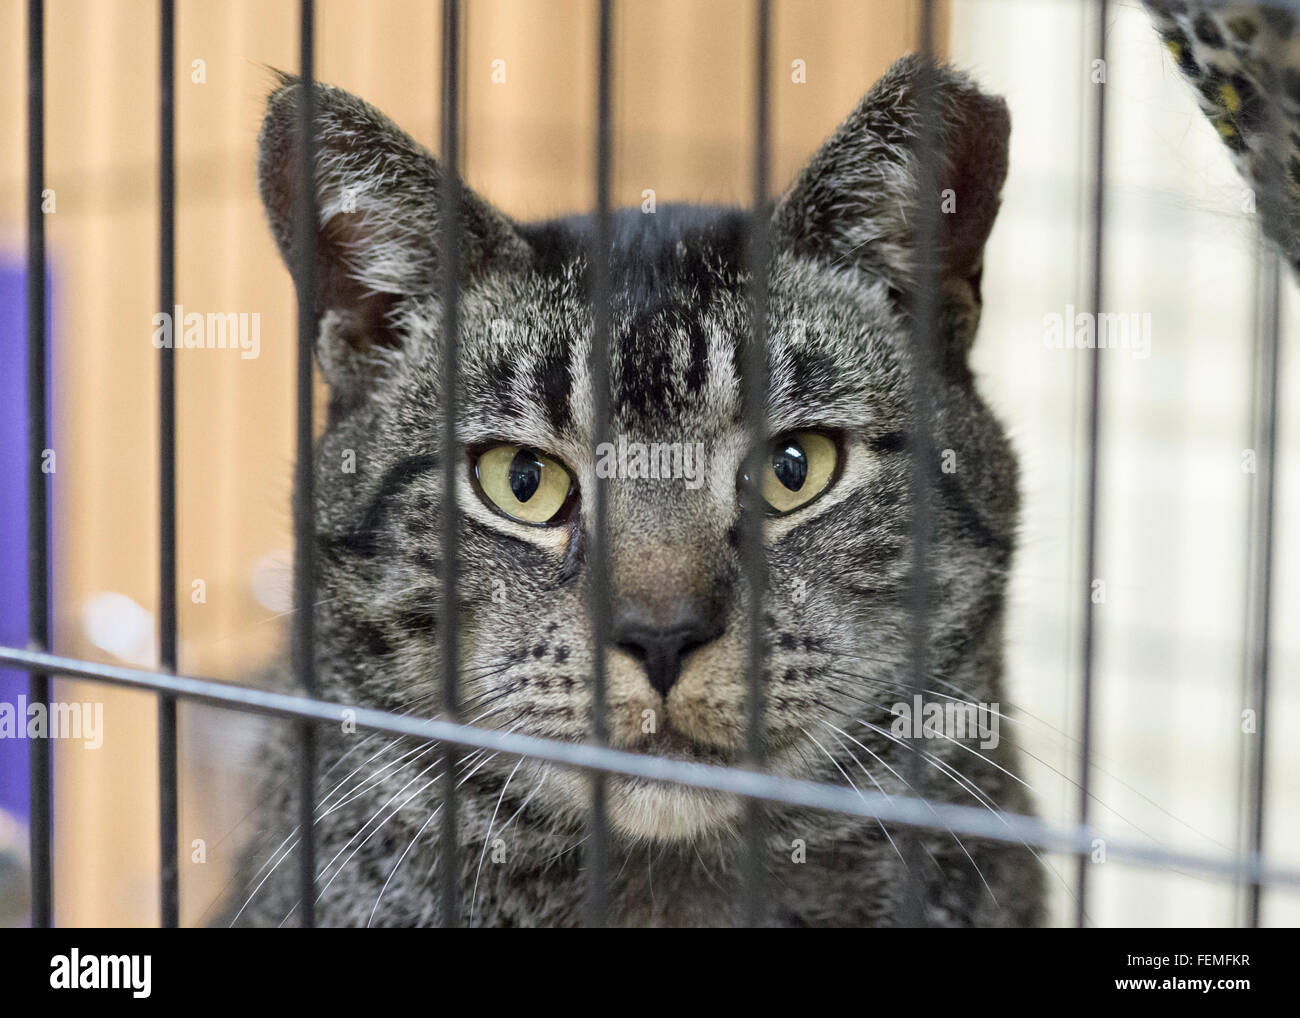 Wantagh, New York, USA. 7th February 2016. Sitting in his cage, Woodbury, a friendly tabby cat, is available for - Stock Image